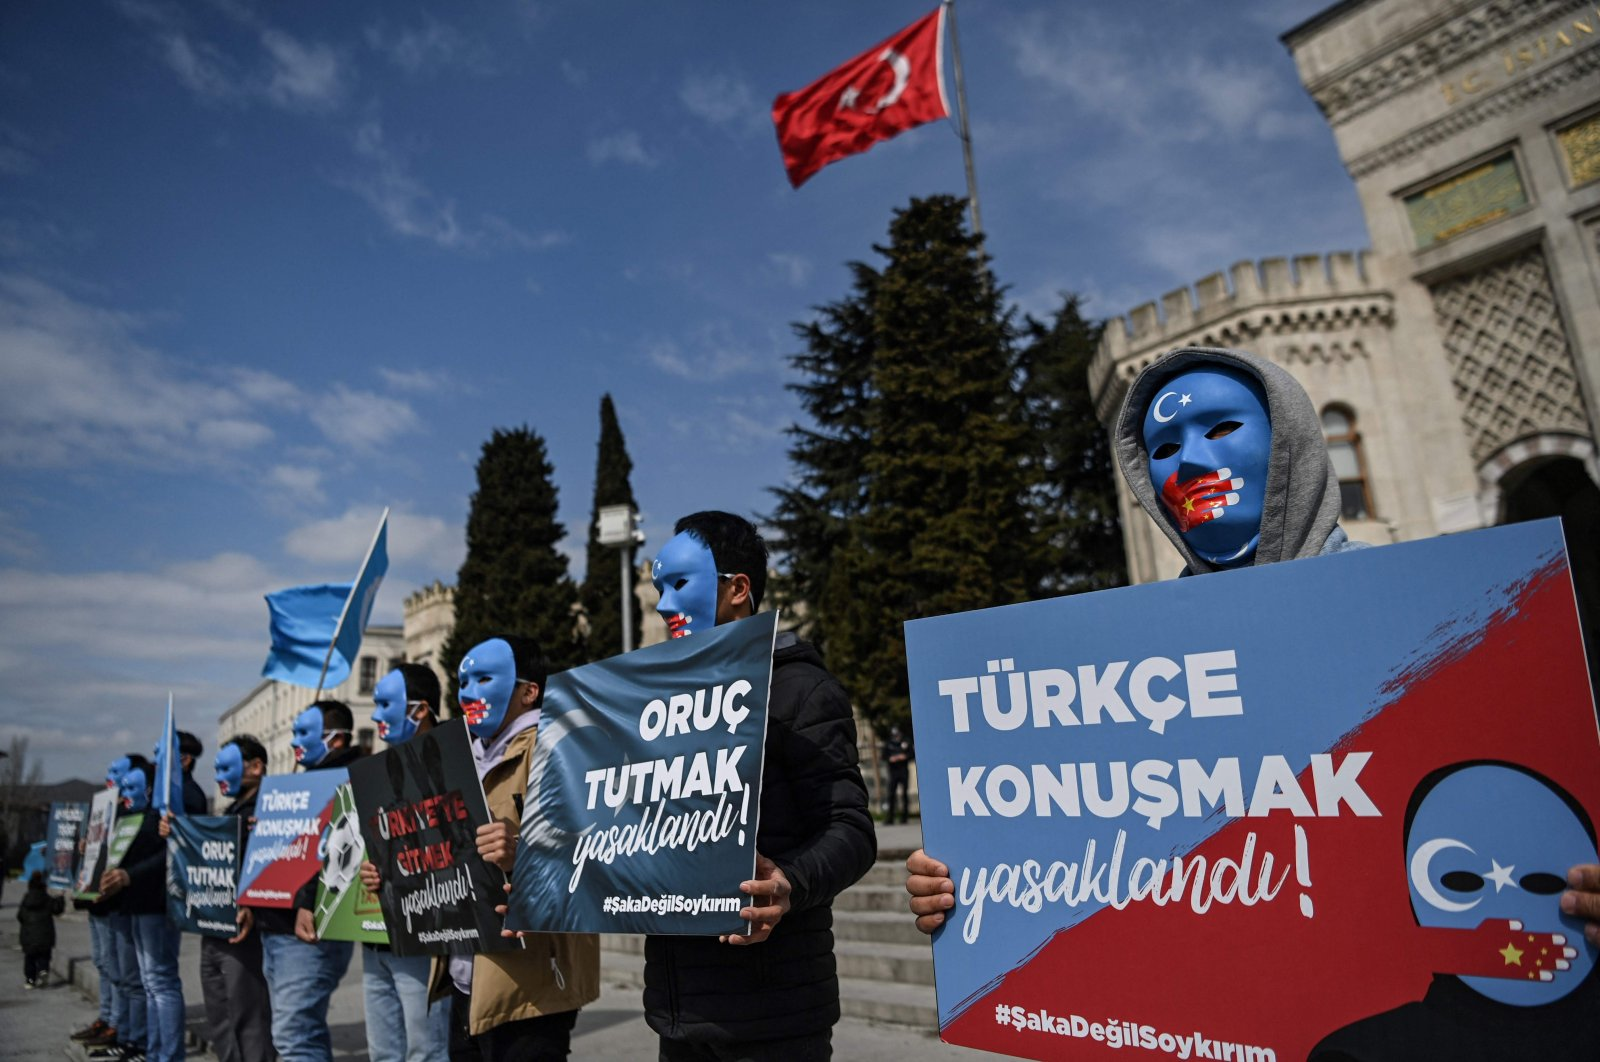 Supporters of the Uyghur Turks demonstrate during a protest, Istanbul, Turkey, April 1, 2021. (AFP Photo)